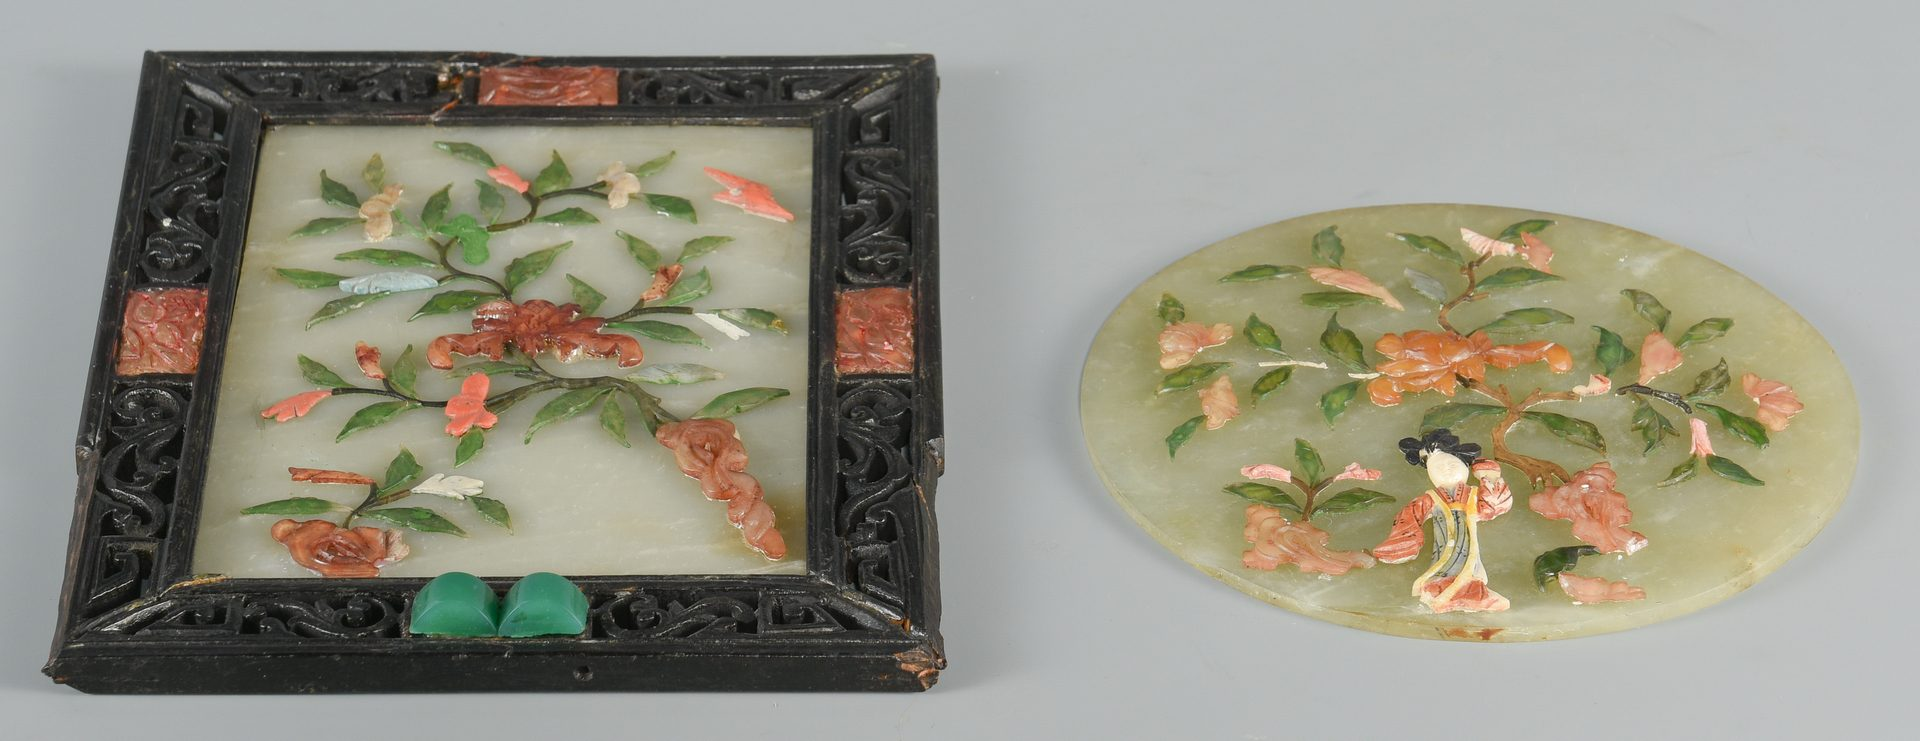 Lot 28: 2 Chinese Hardstone Table Screens